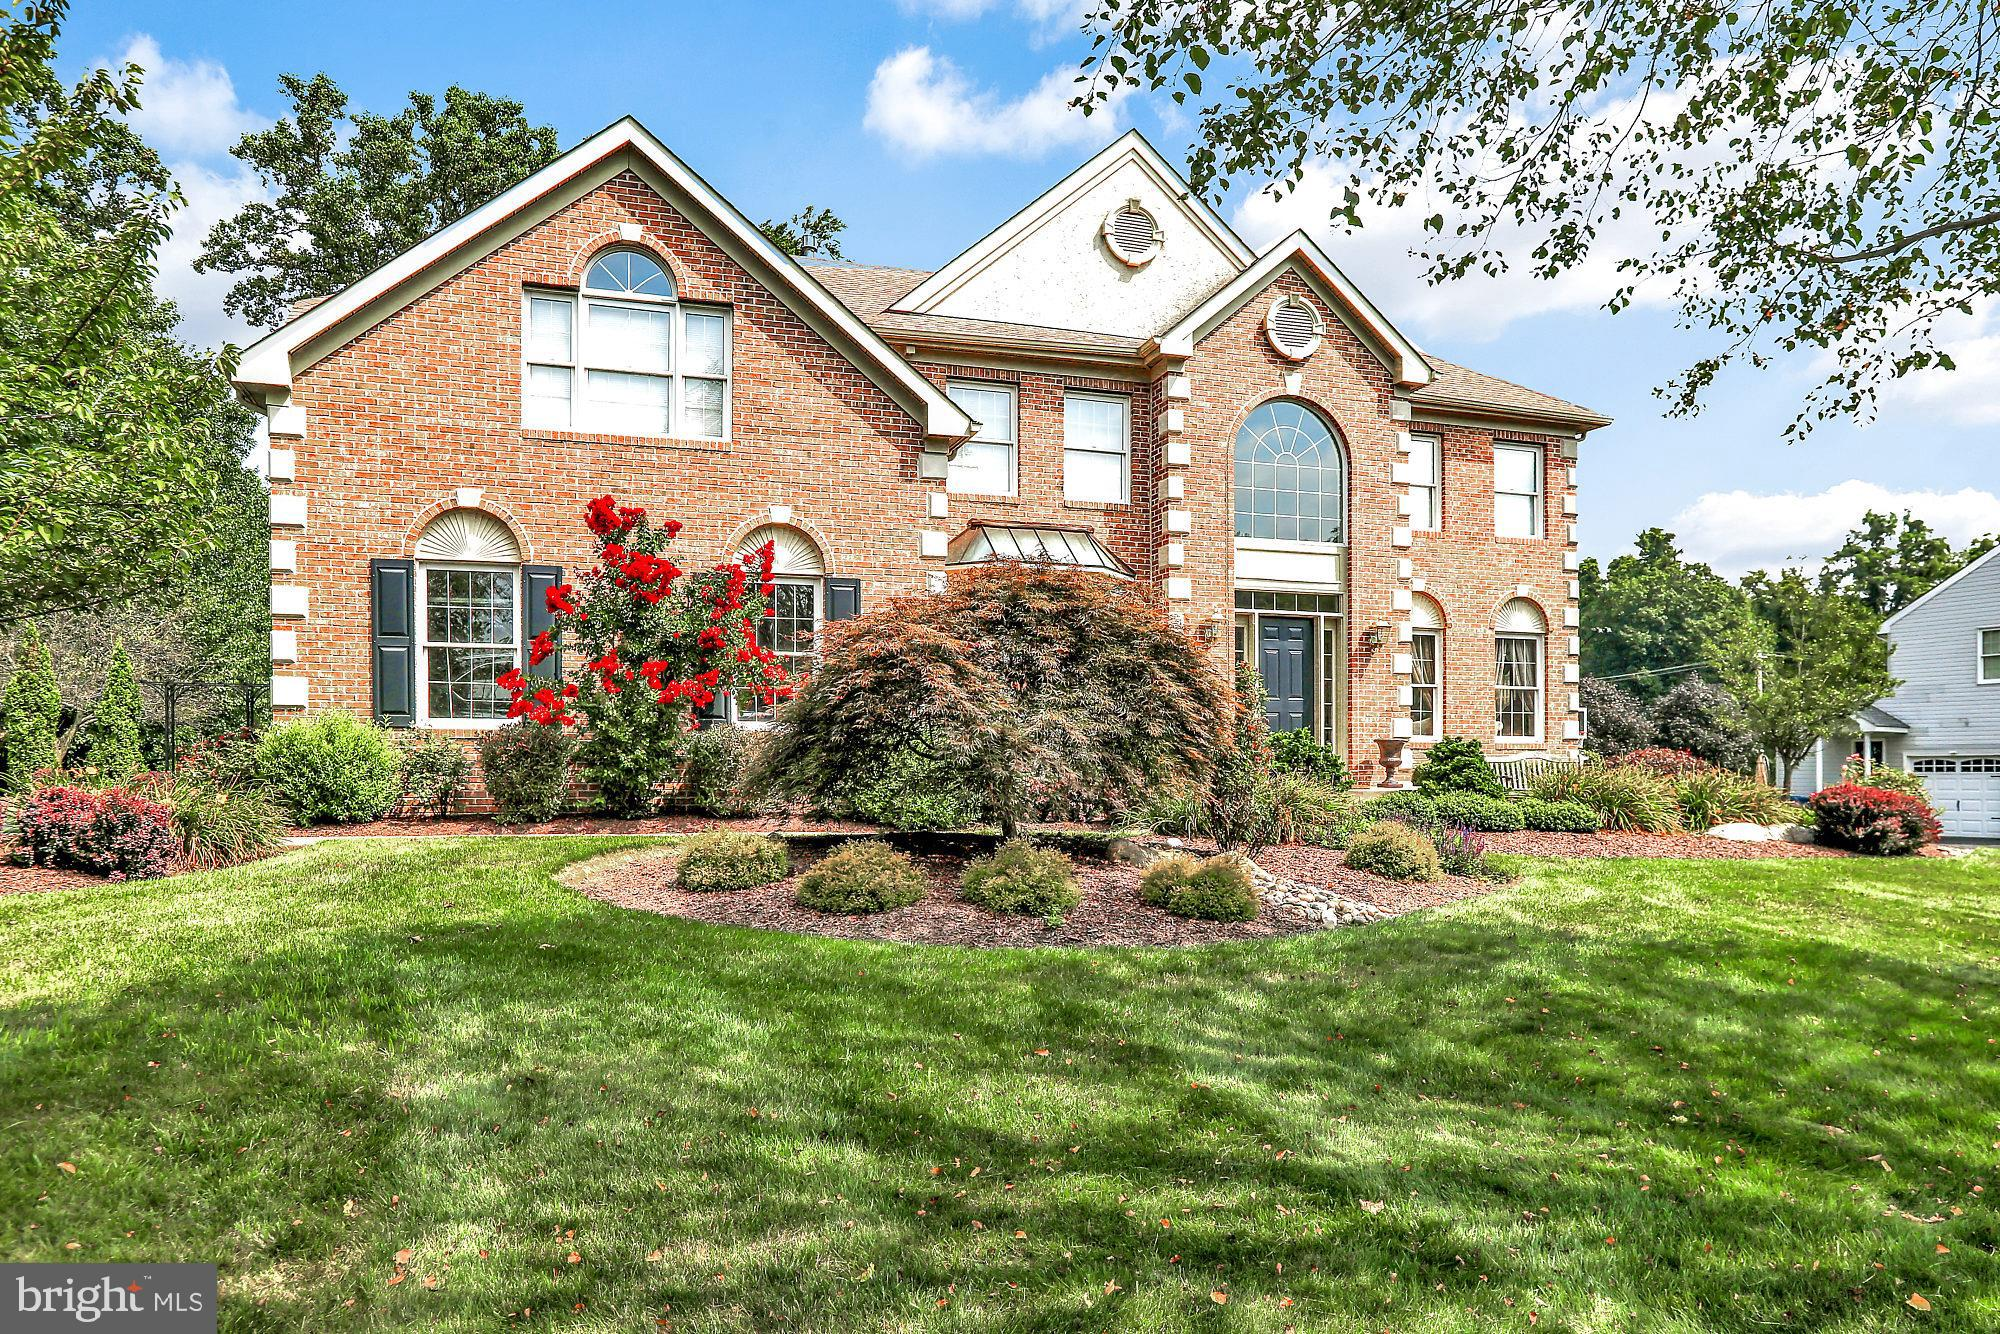 One of Yardley 4 Bedroom Homes for Sale at 1602 FAIRFIELD ROAD